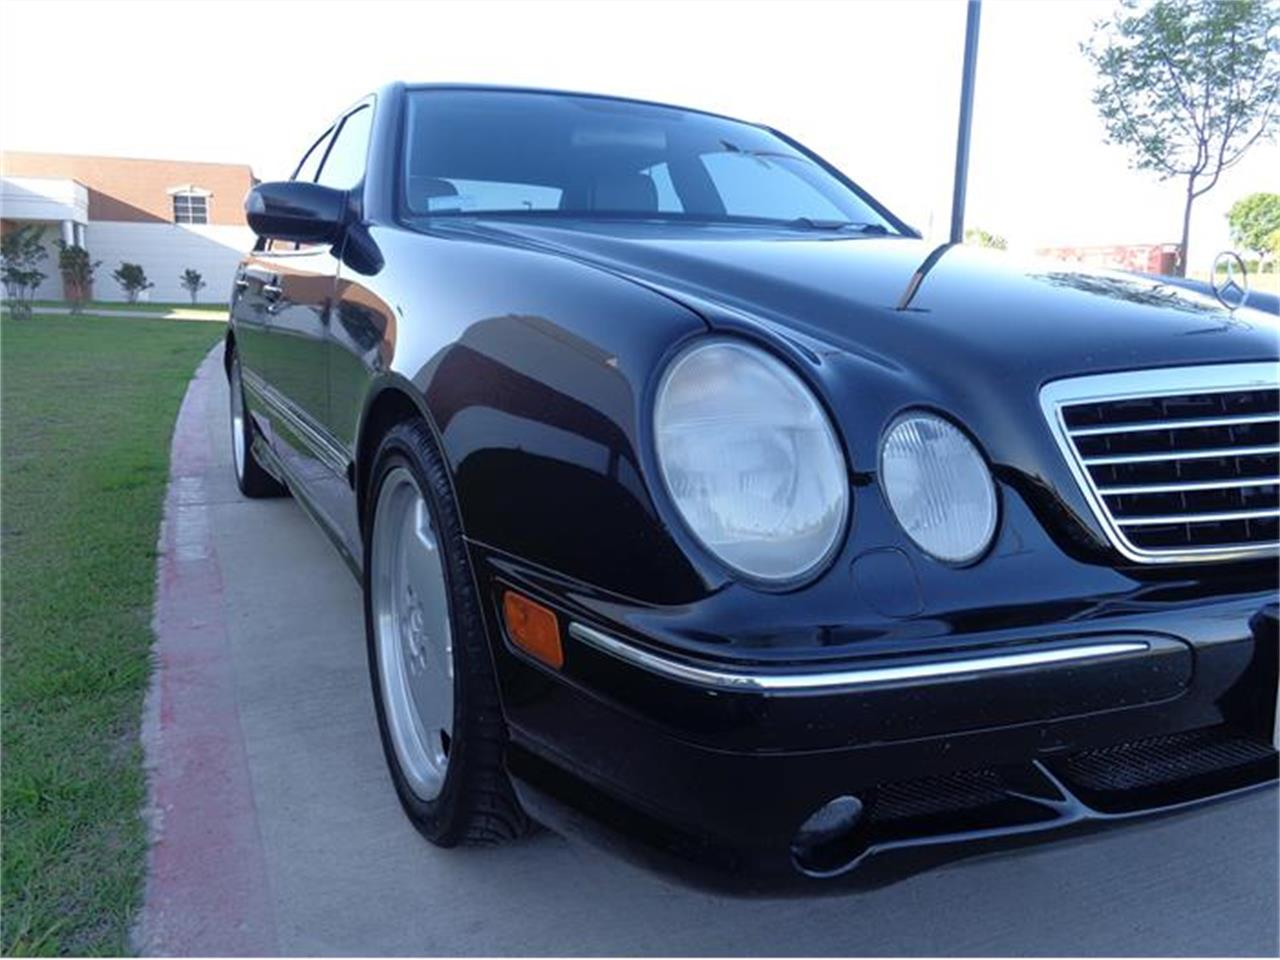 Large Picture of '01 Mercedes-Benz E55 - $12,200.00 - HUJ9